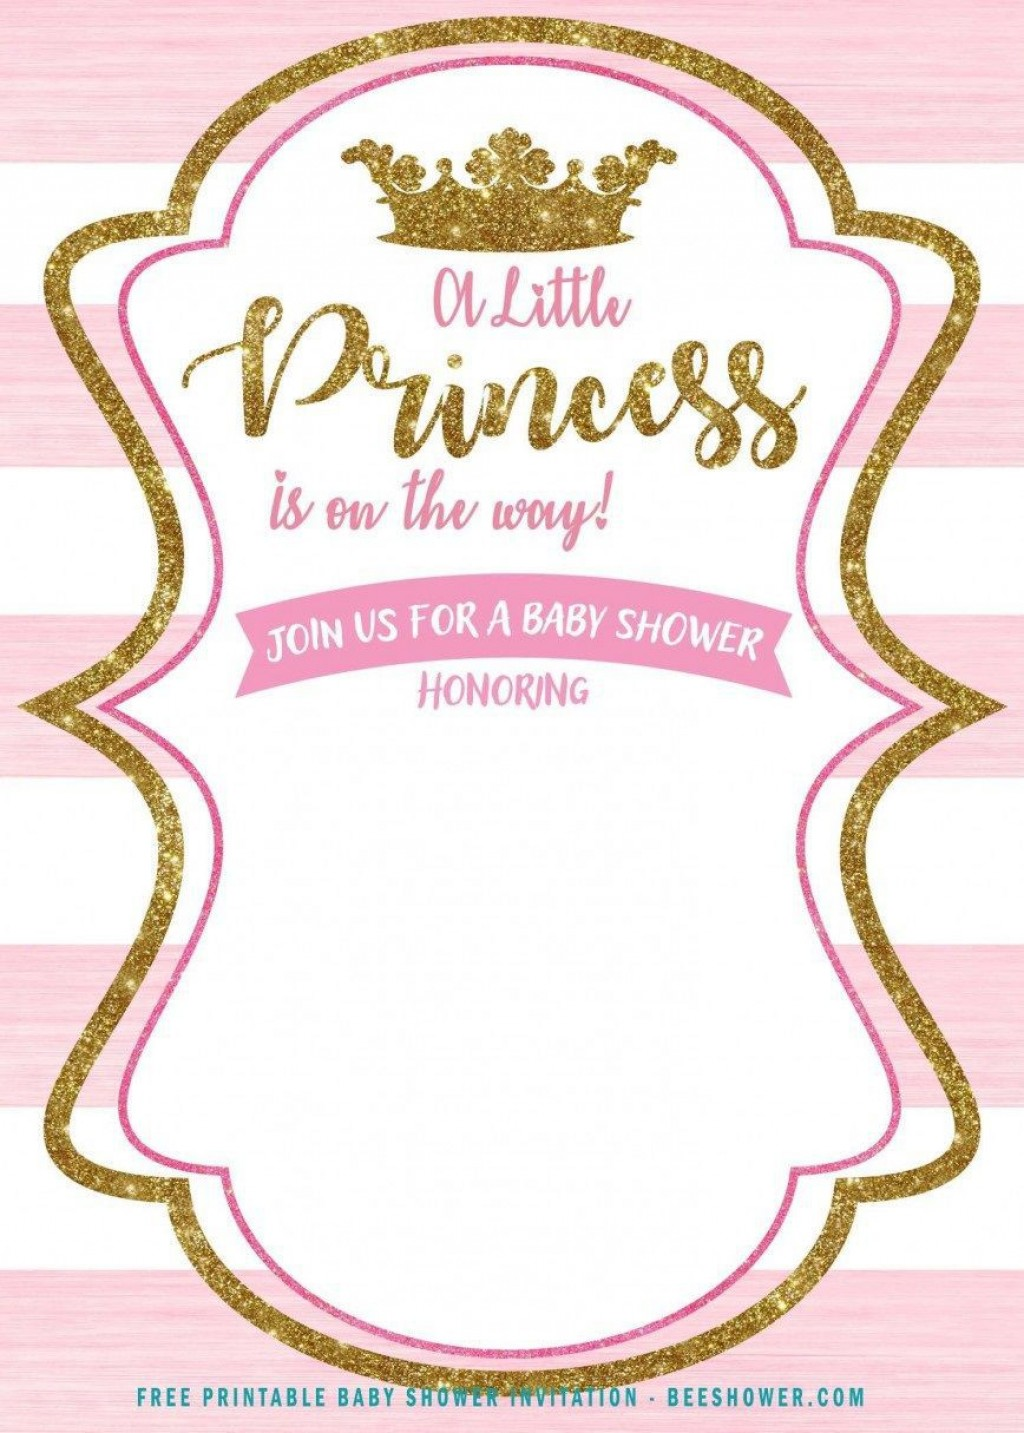 002 Surprising Free Princes Baby Shower Invitation Template For Word Highest Clarity Large